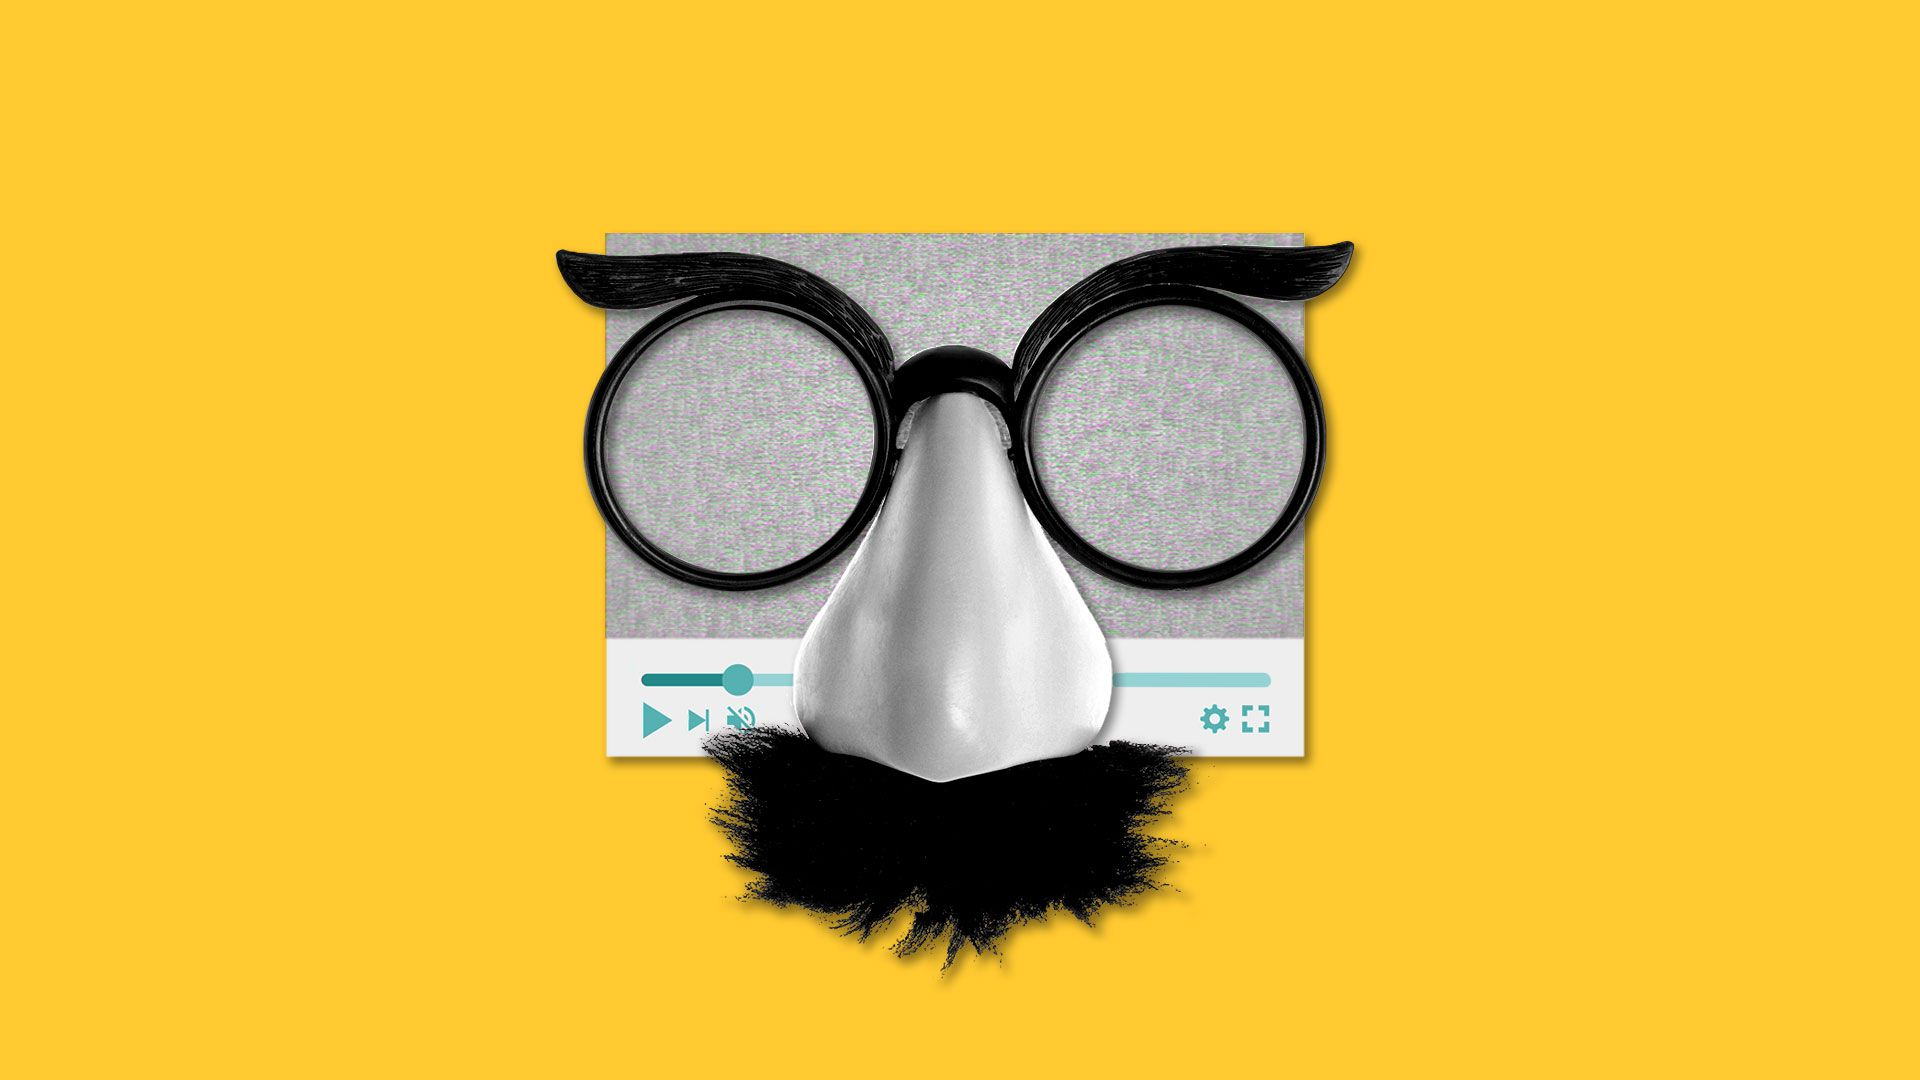 Illustration of a video player with static wearing a classic mustache and glasses disguise.